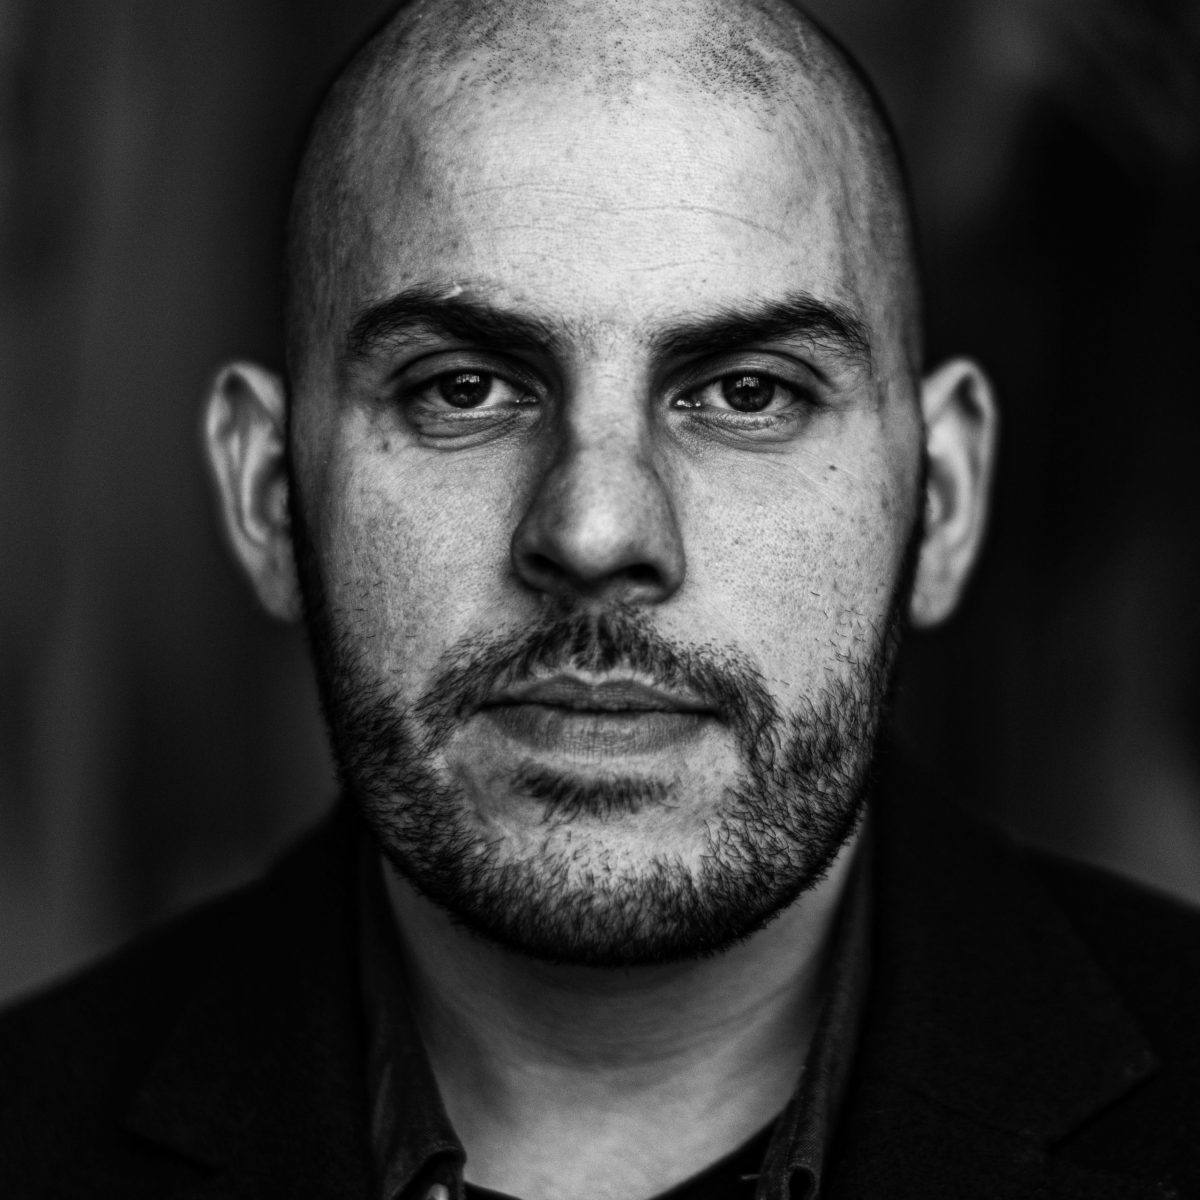 Photo of Fatih, jury member of the Unlike Portrait Awards photography contest